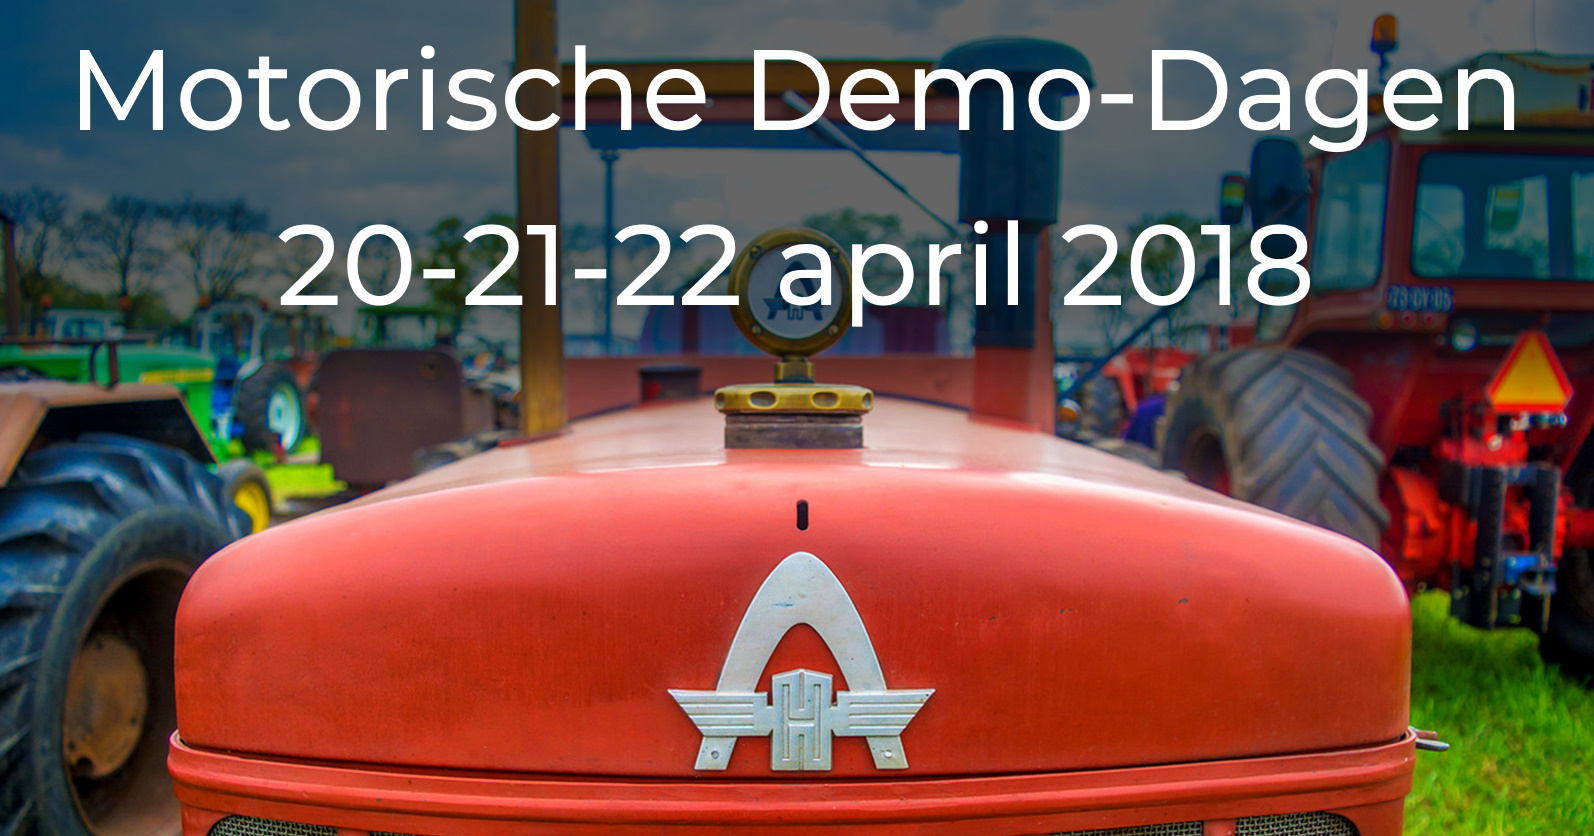 Motorische Demo-Dagen 20-21-22 april 2018 • 03-02-2018